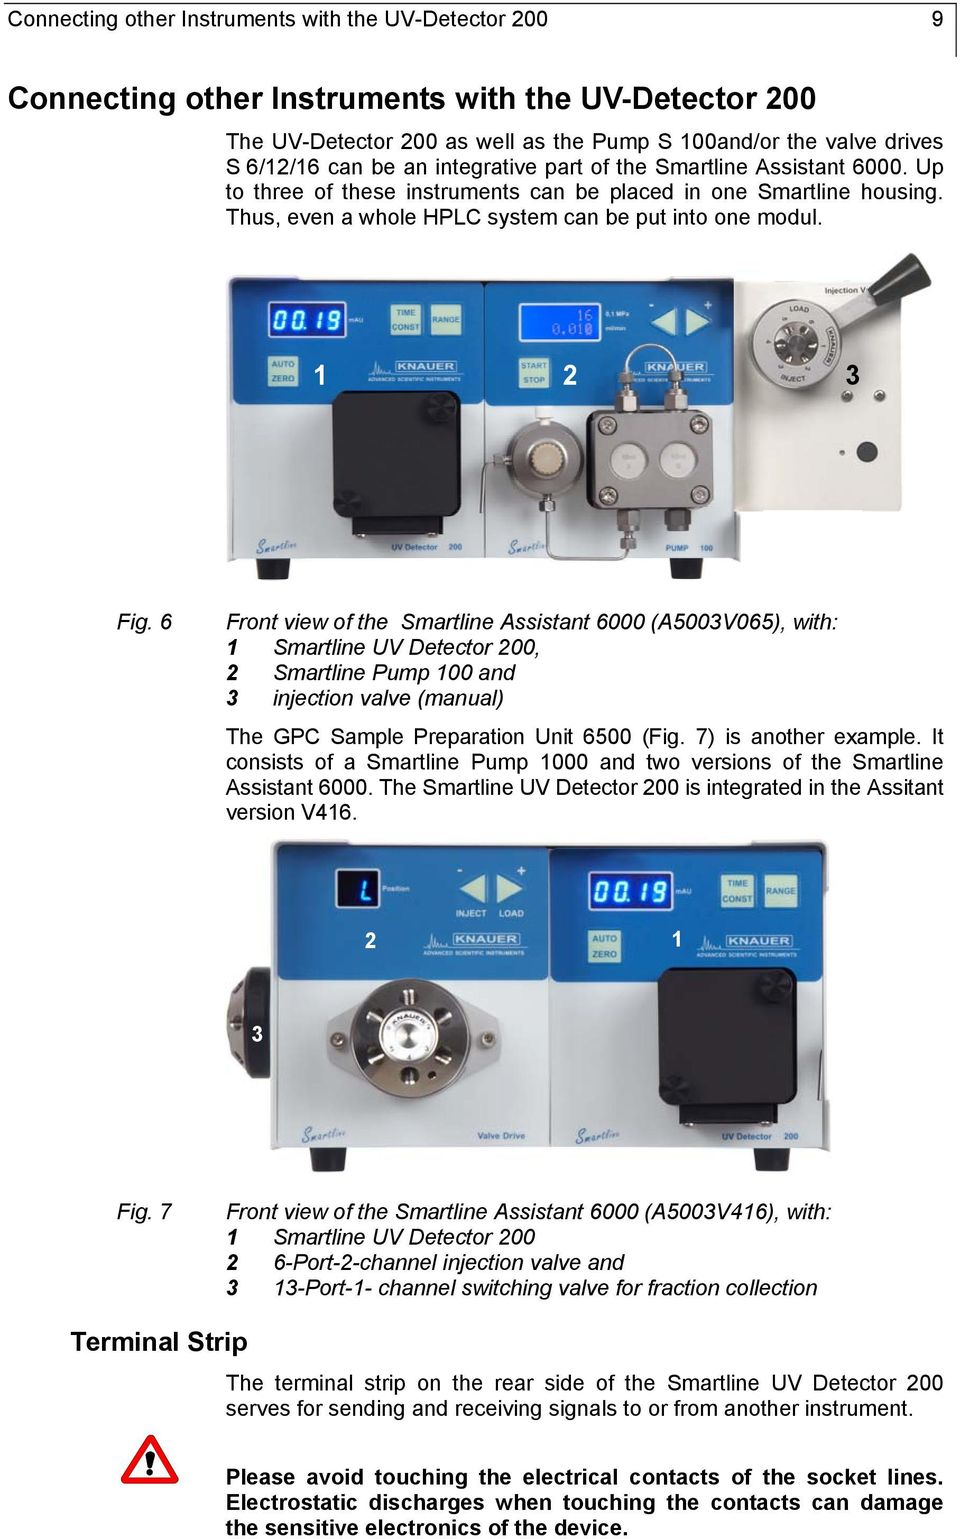 6 Front view of the Smartline Assistant 6000 (A5003V065), with: 1 Smartline UV Detector 200, 2 Smartline Pump 100 and 3 injection valve (manual) The GPC Sample Preparation Unit 6500 (Fig.